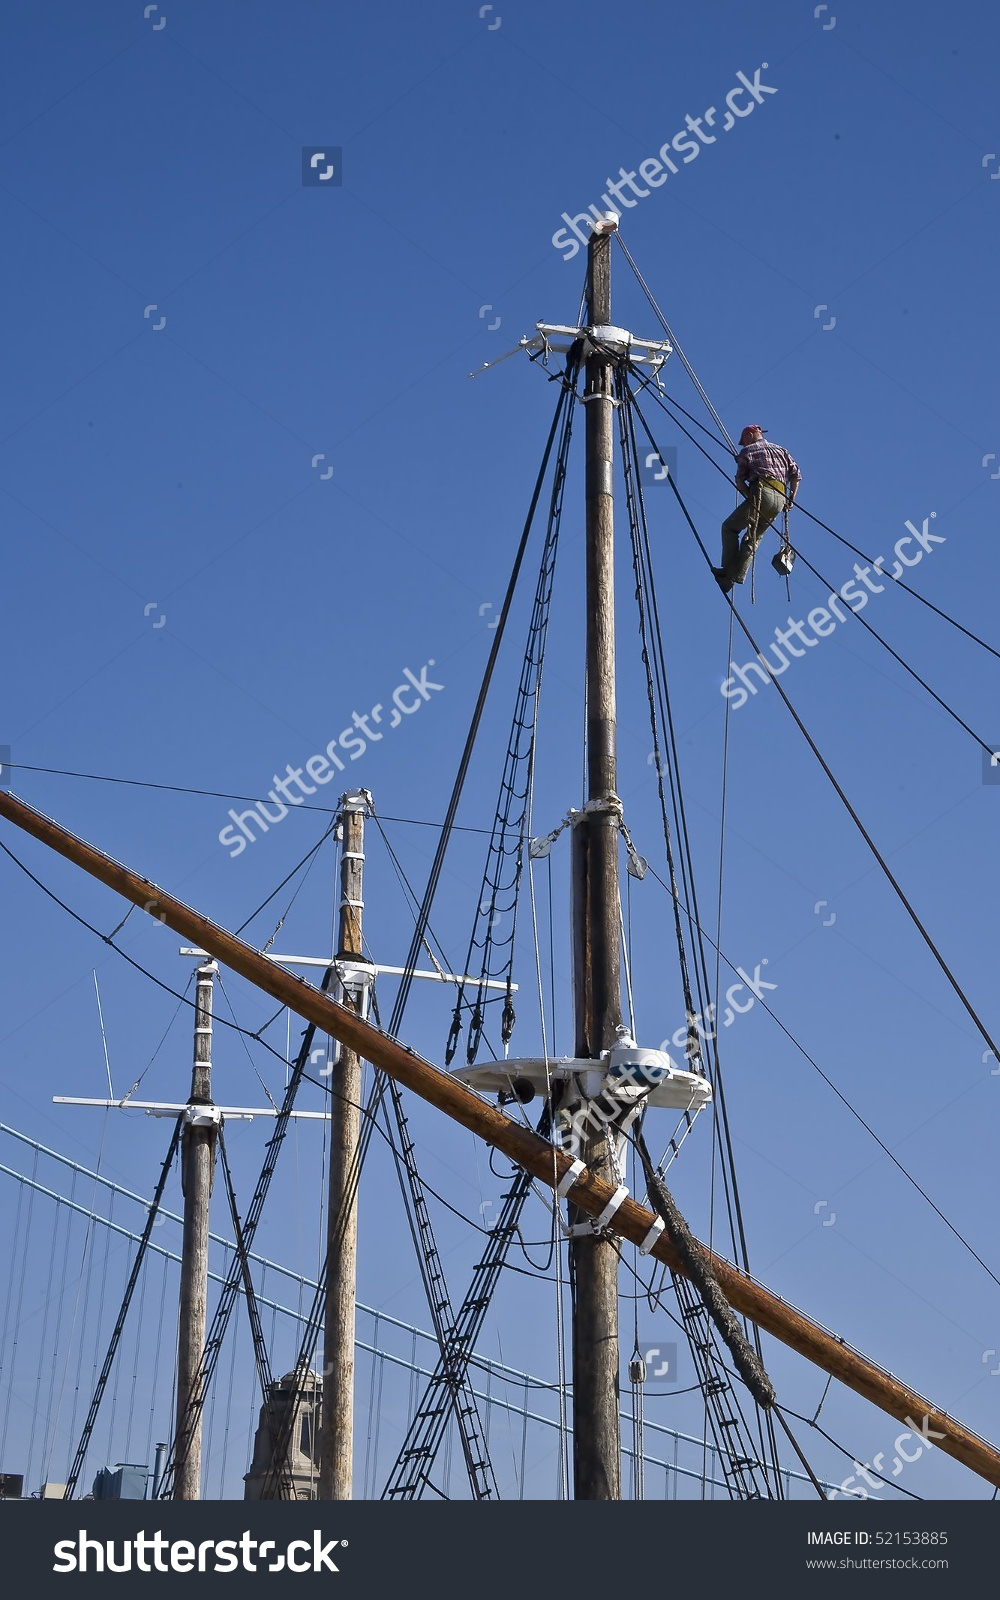 Man Suspended In A Bosun'S Chair Repairing The Rigging Of An Old.